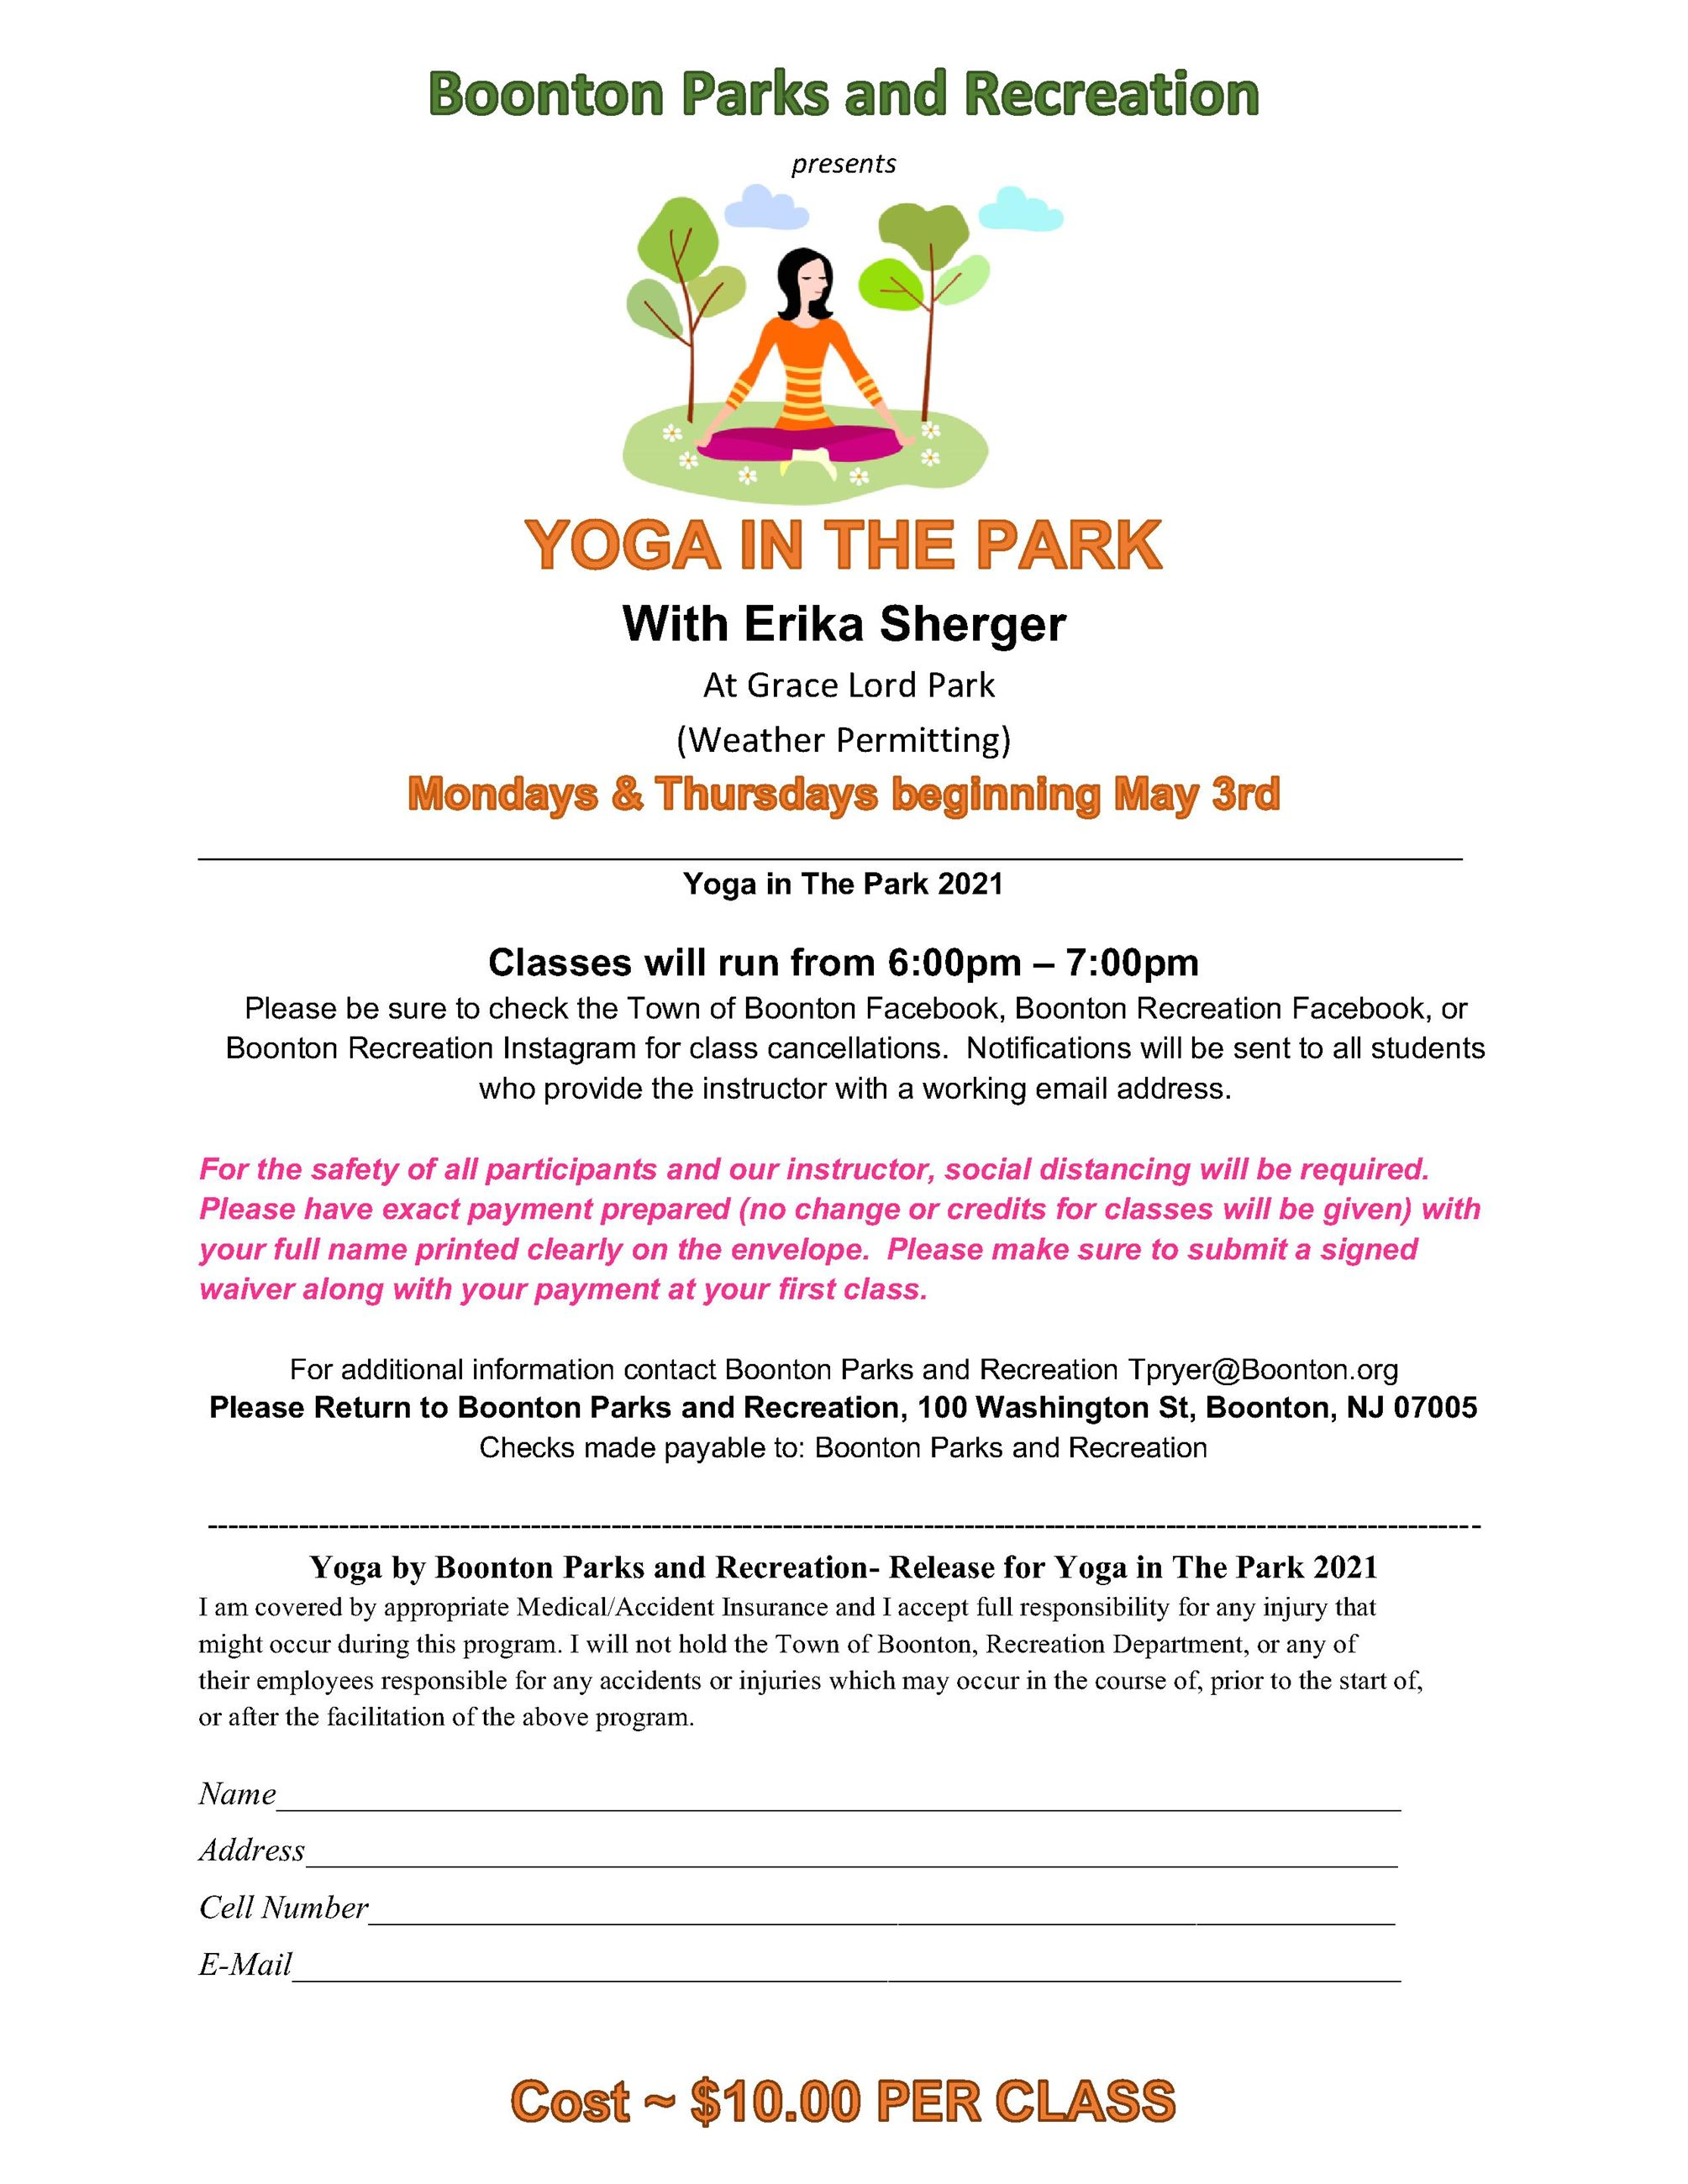 Yoga in the Park 2021